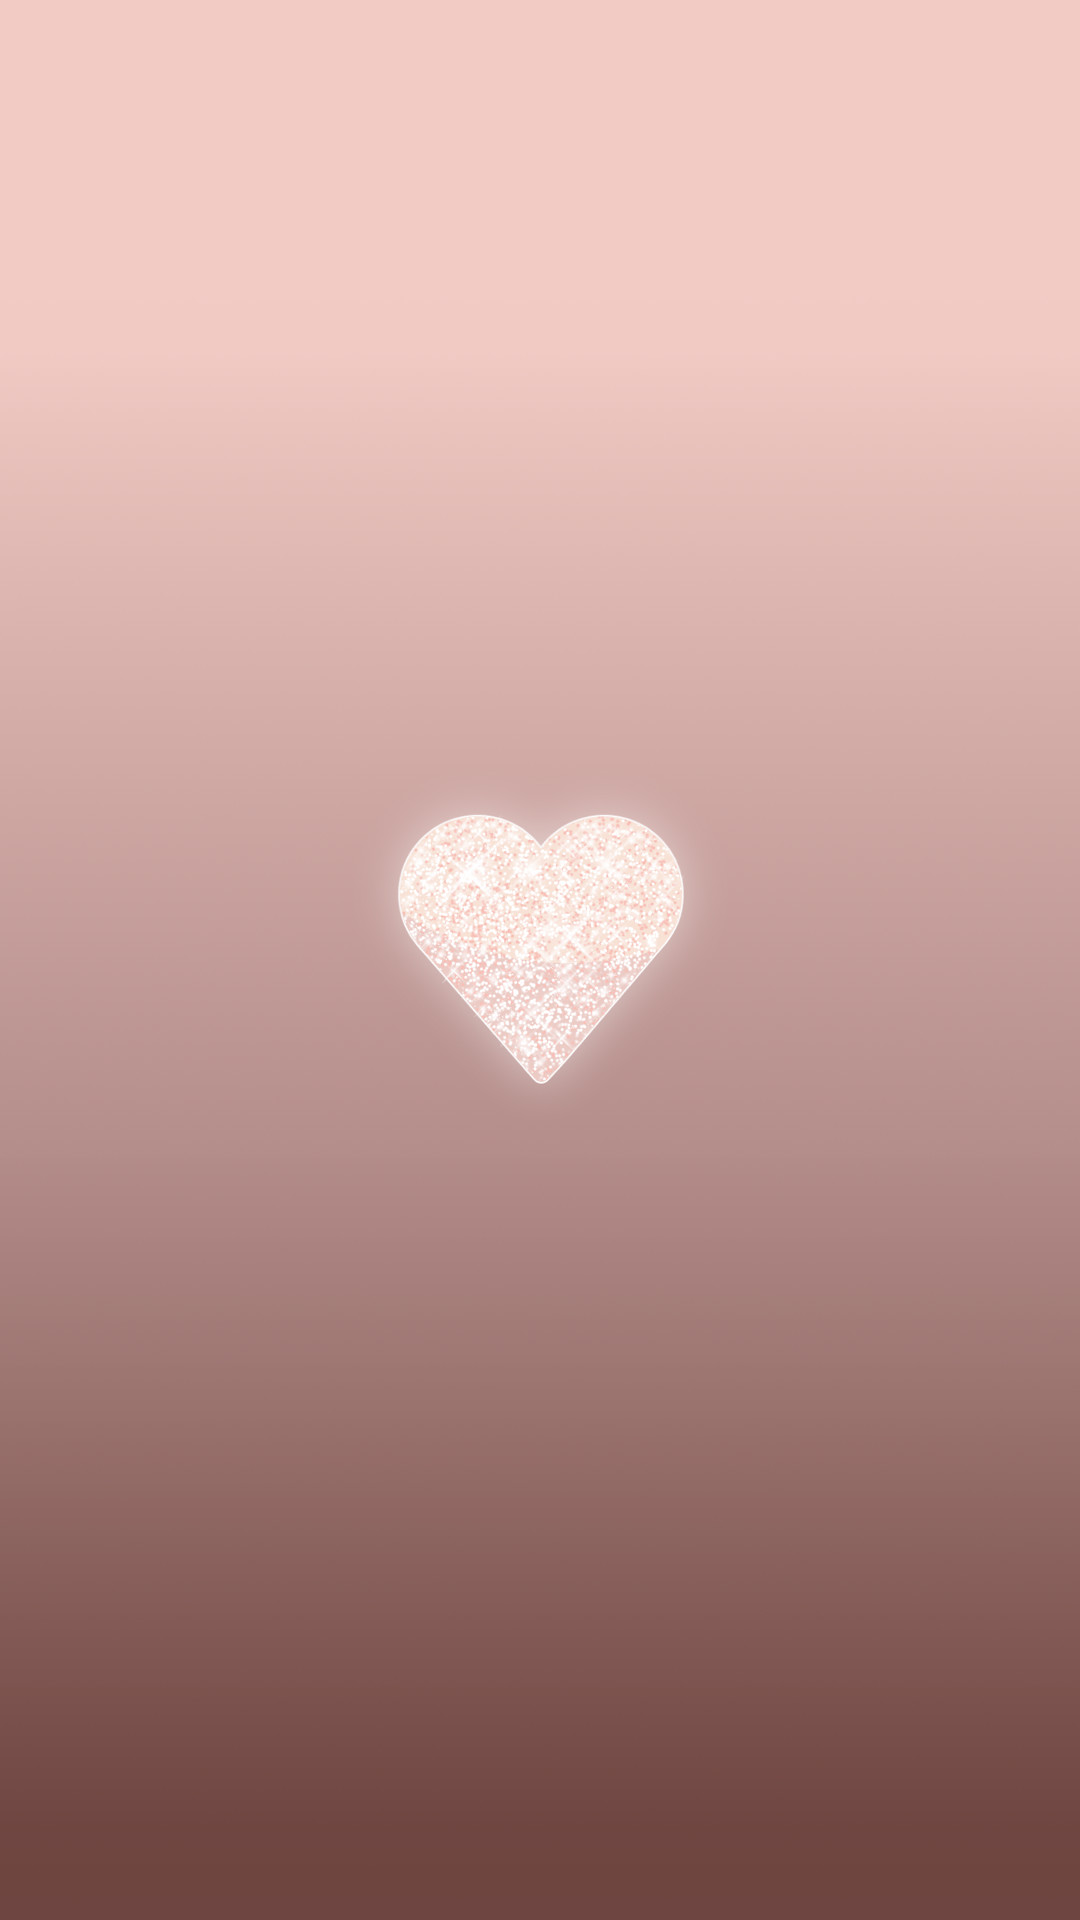 Res: 1080x1920, Rose Gold Heart, phone wallpaper, background, lock screen